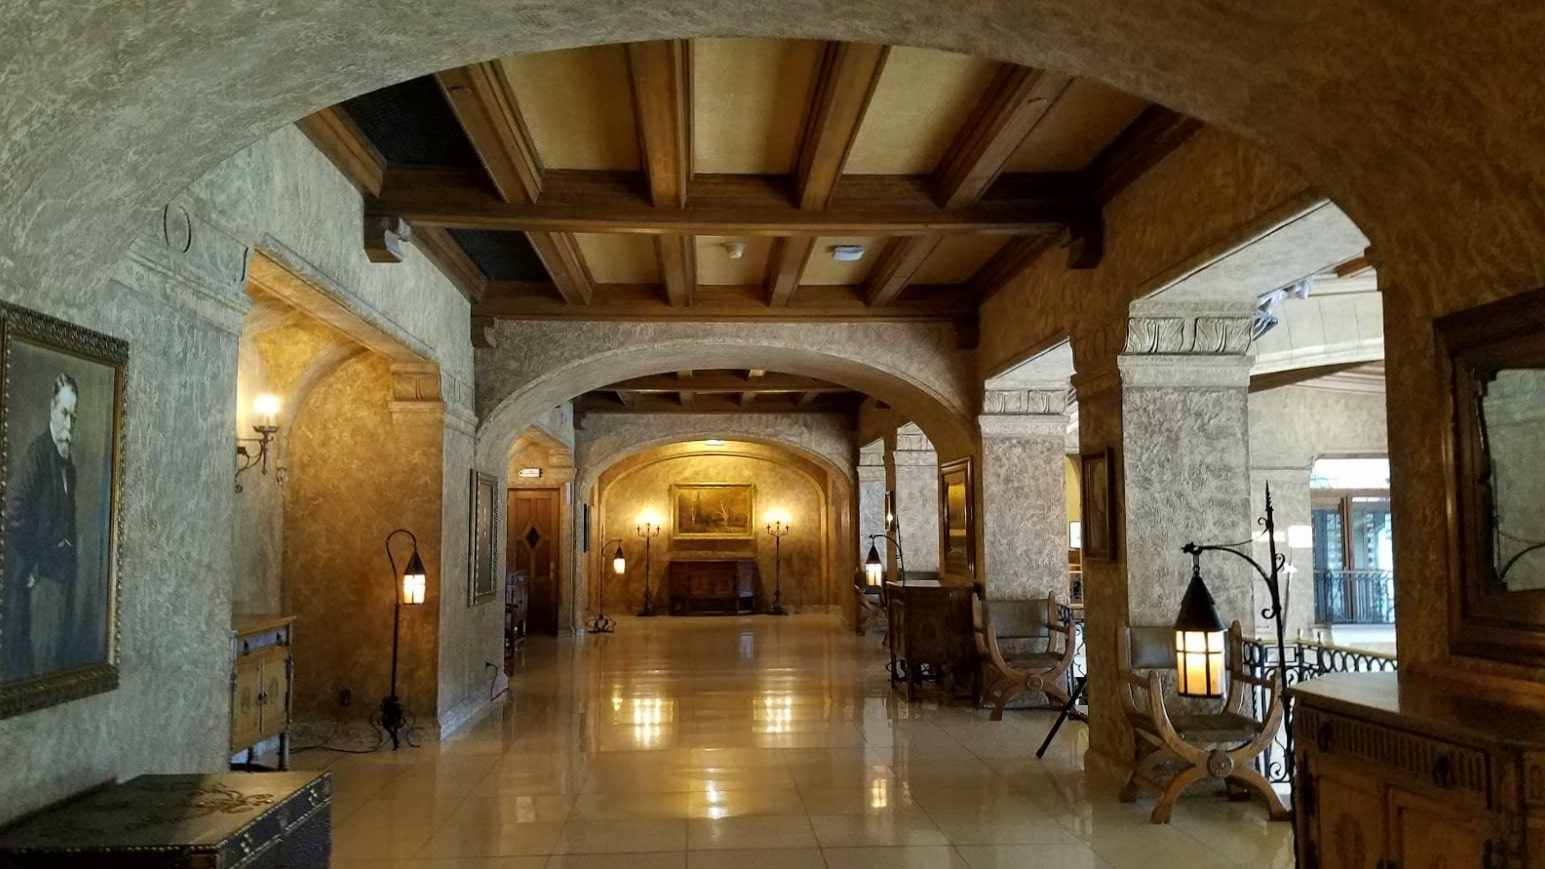 One of the corridors of the Banff Springs Hotel with a ghostly painting